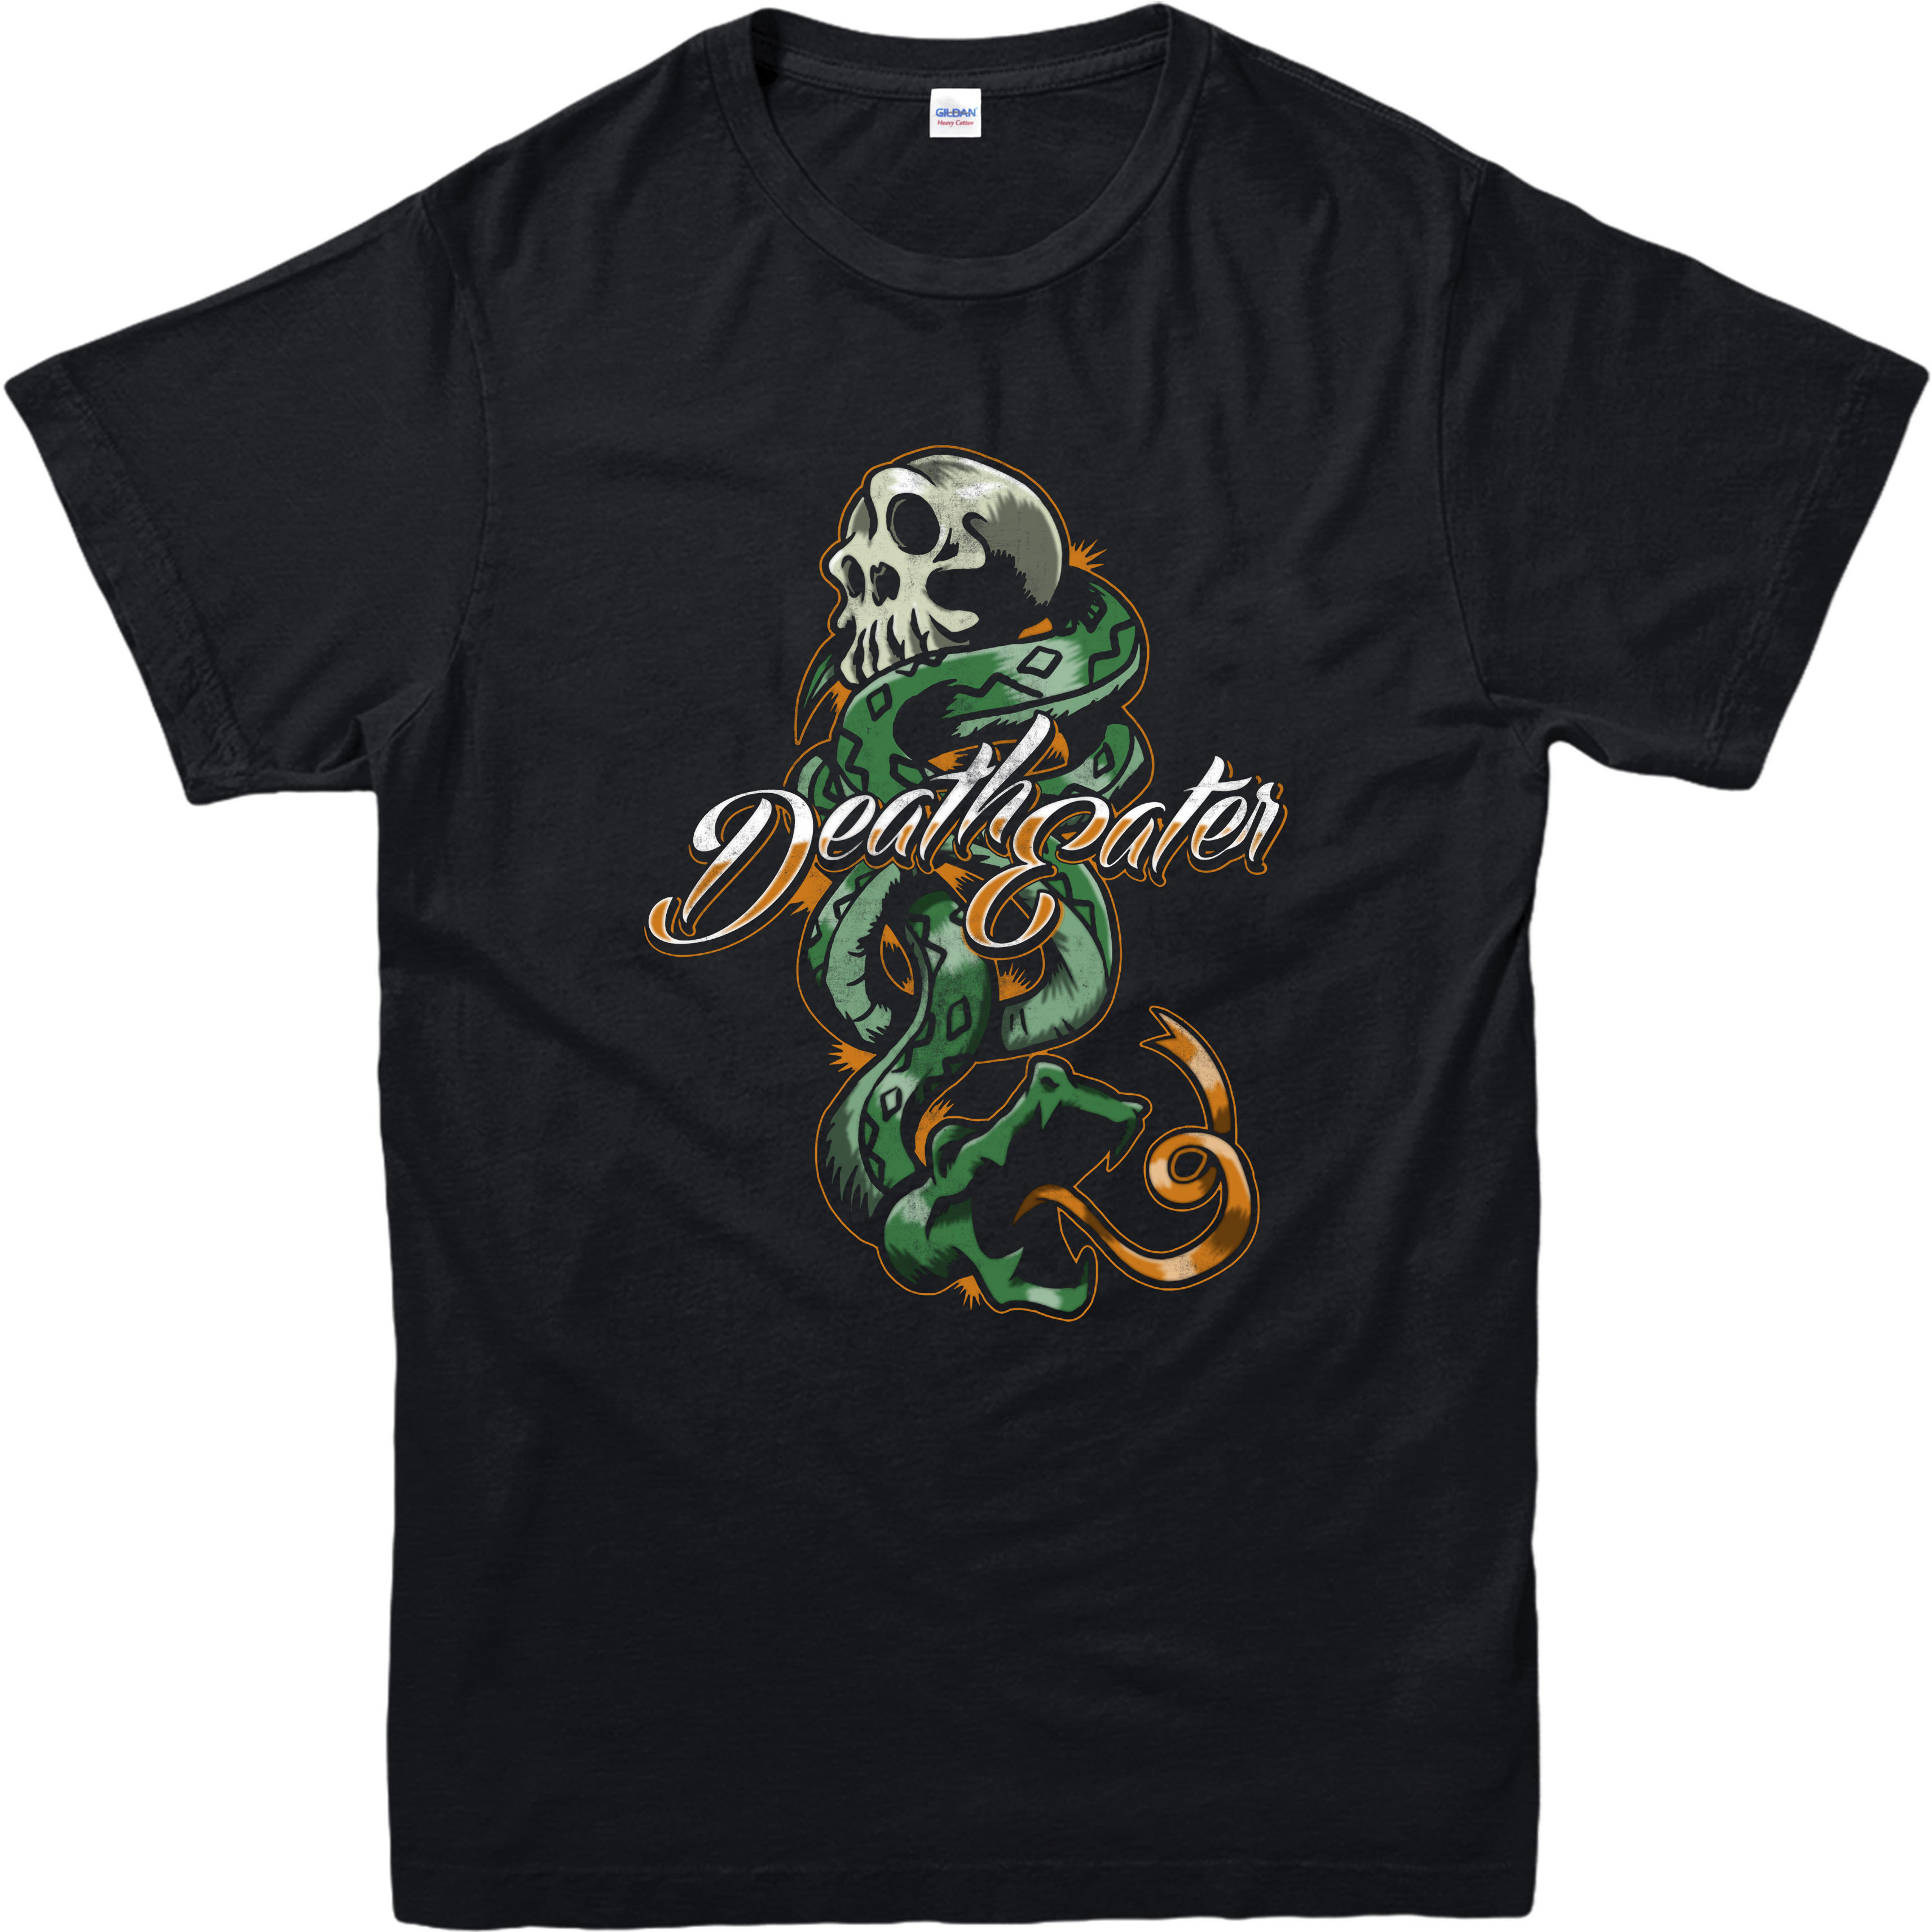 harry potter tshirtdeath eaters cartoon lord voldemort